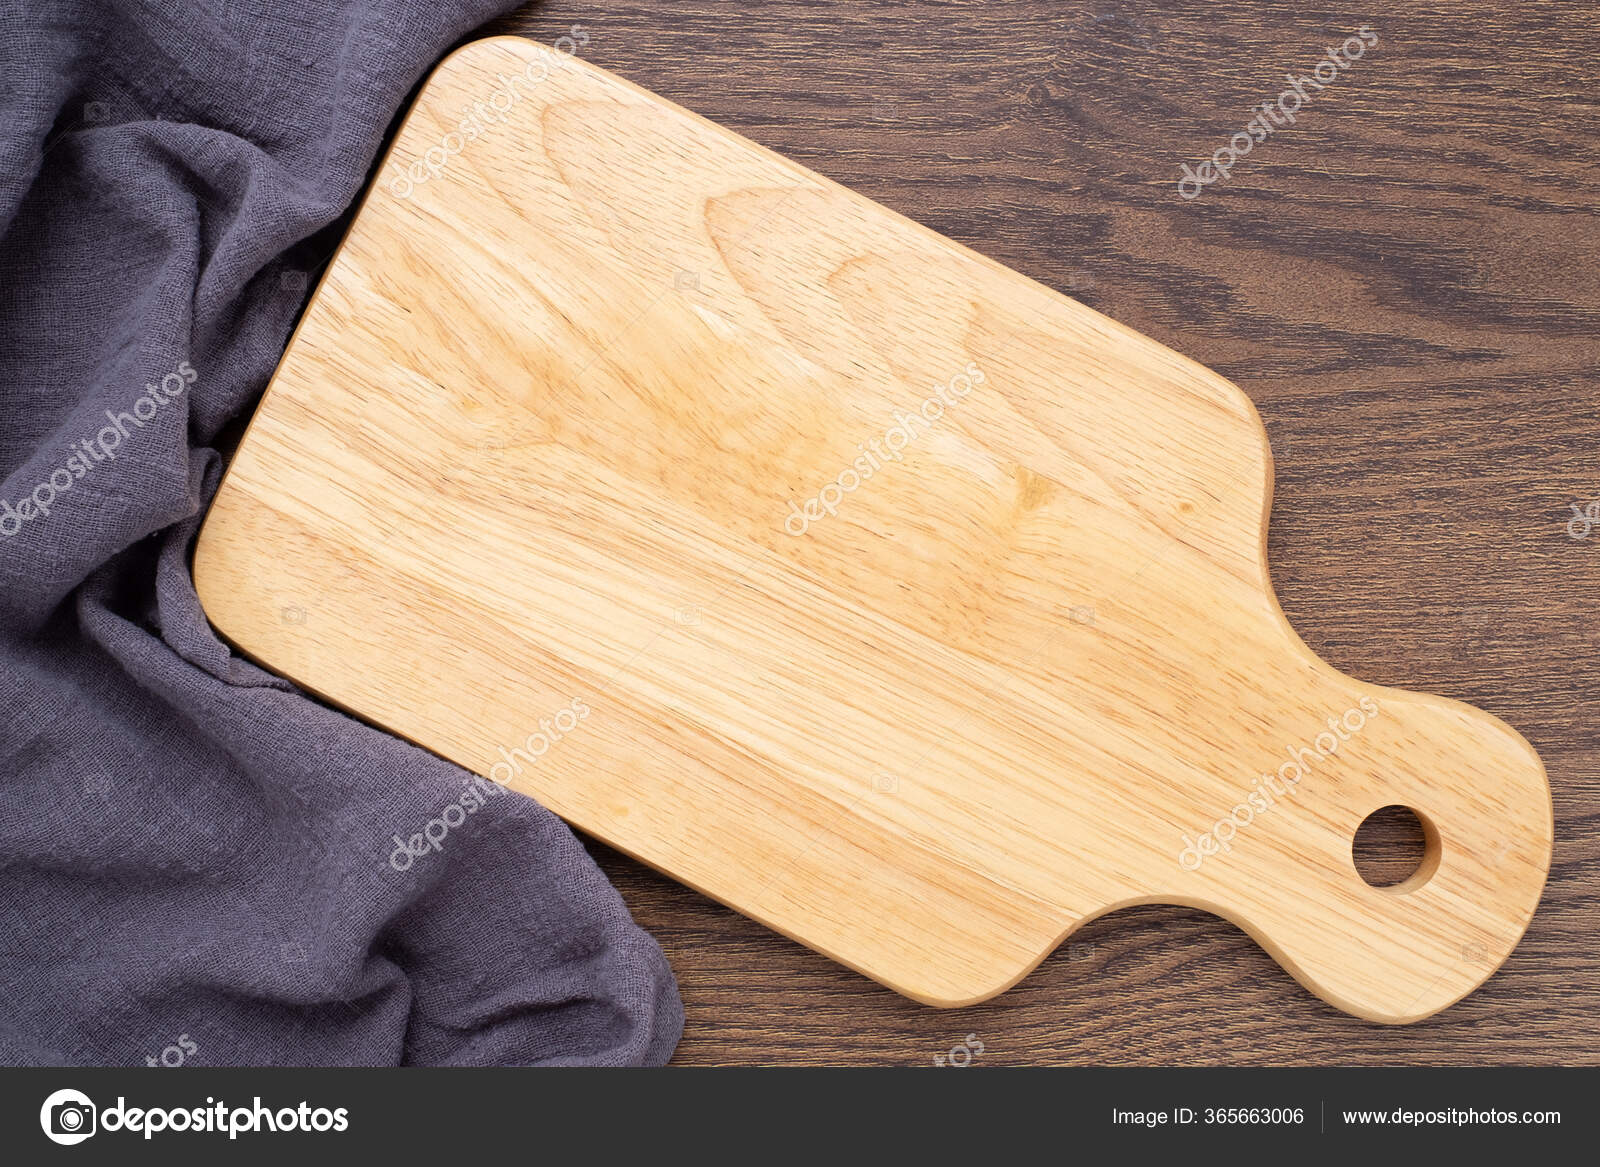 Top View Wooden Chopping Board Napkin Dark Table Background Wood Stock Photo Image By C Setthaphatdc415 Gmail Com 365663006